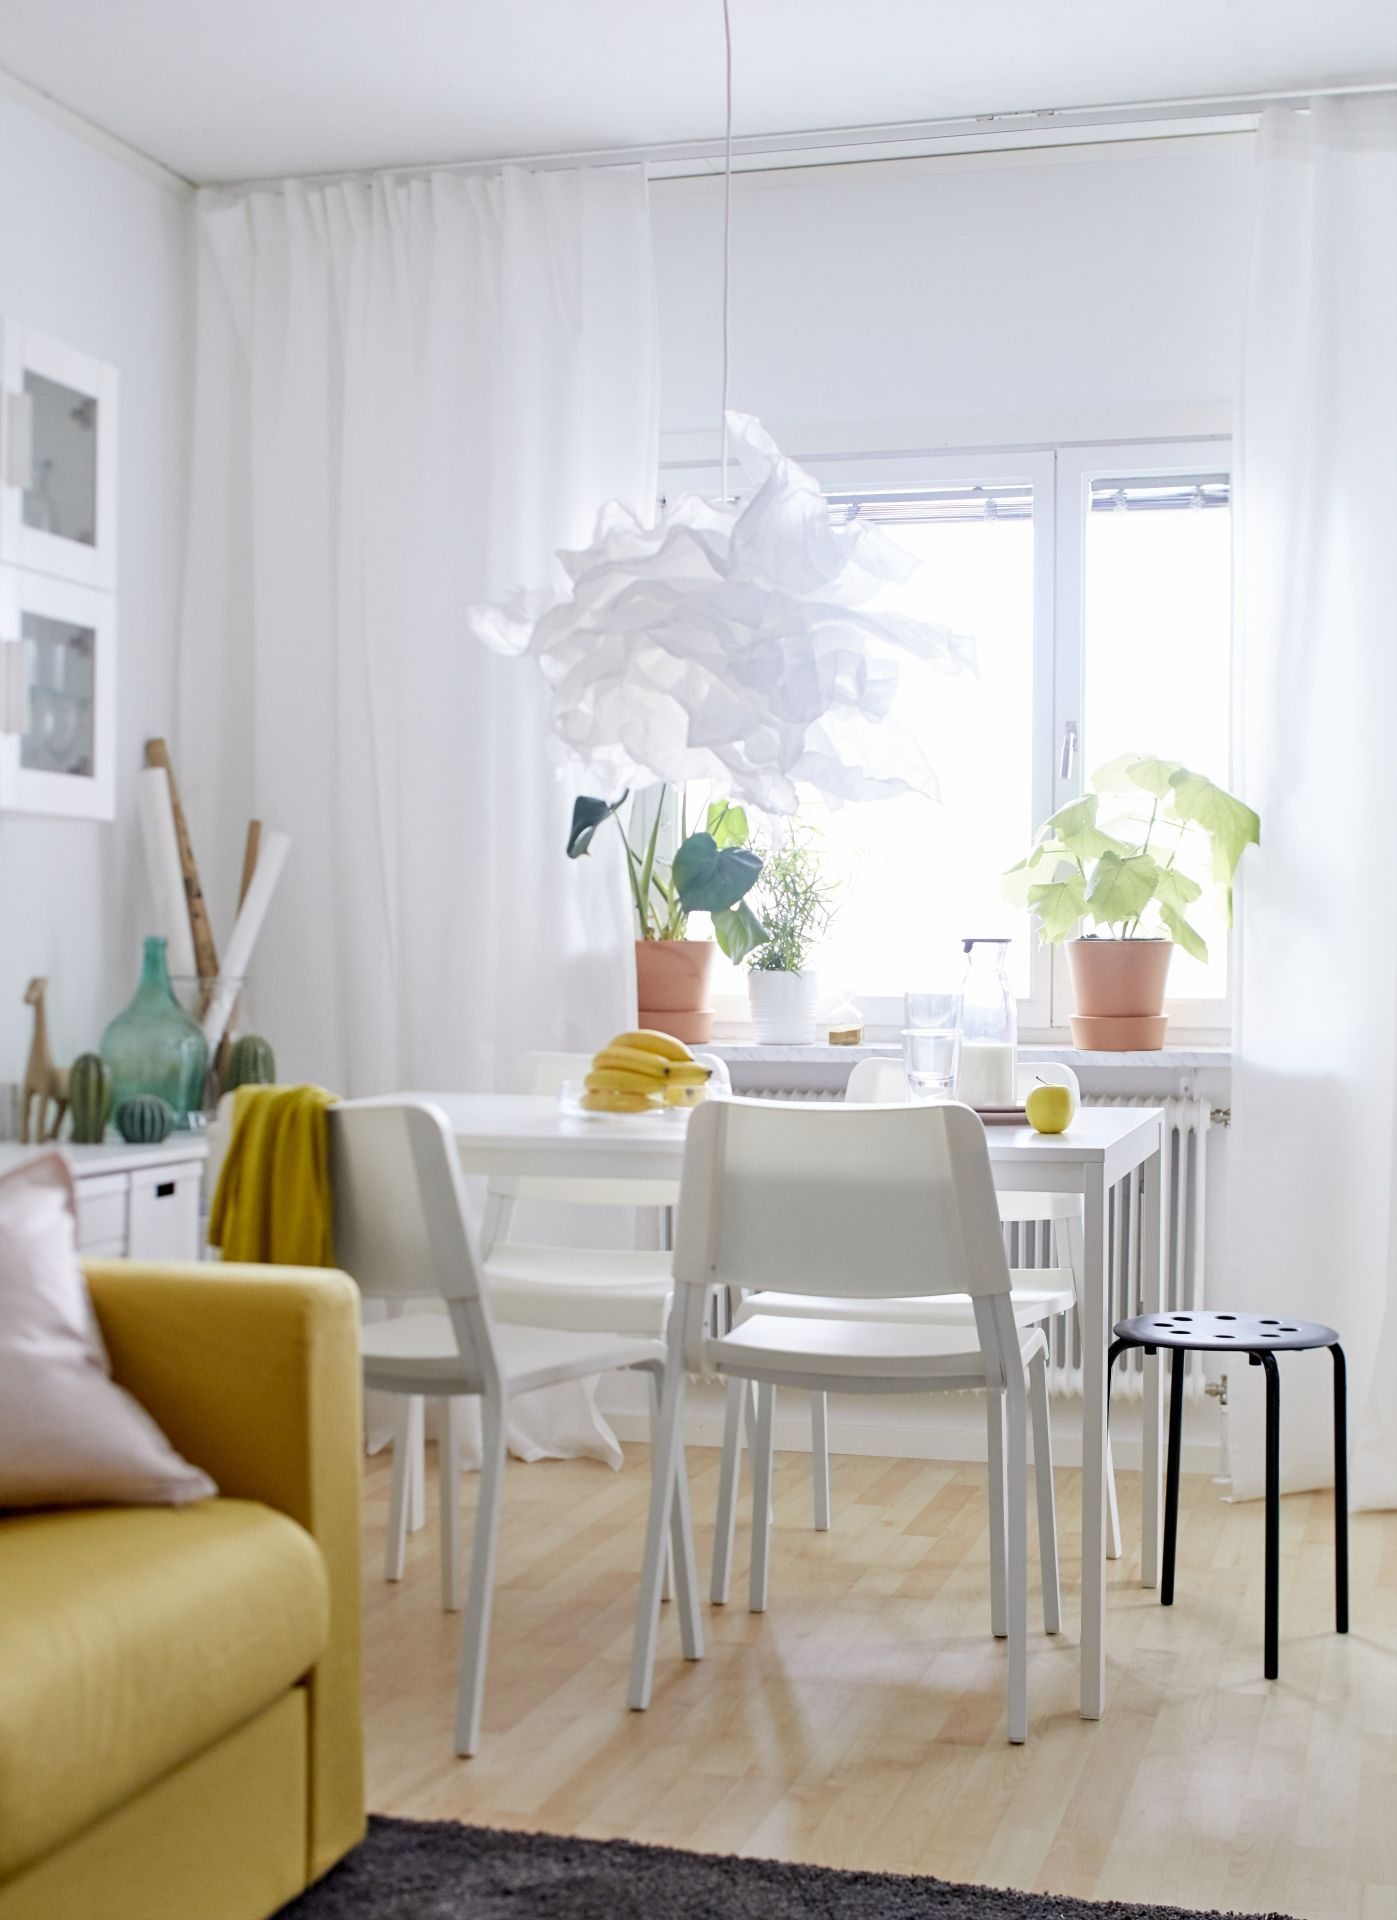 Led Hanglamp Ikea Krusning Hanglampenkap Wit Glow Table Ikea Dining Room Table